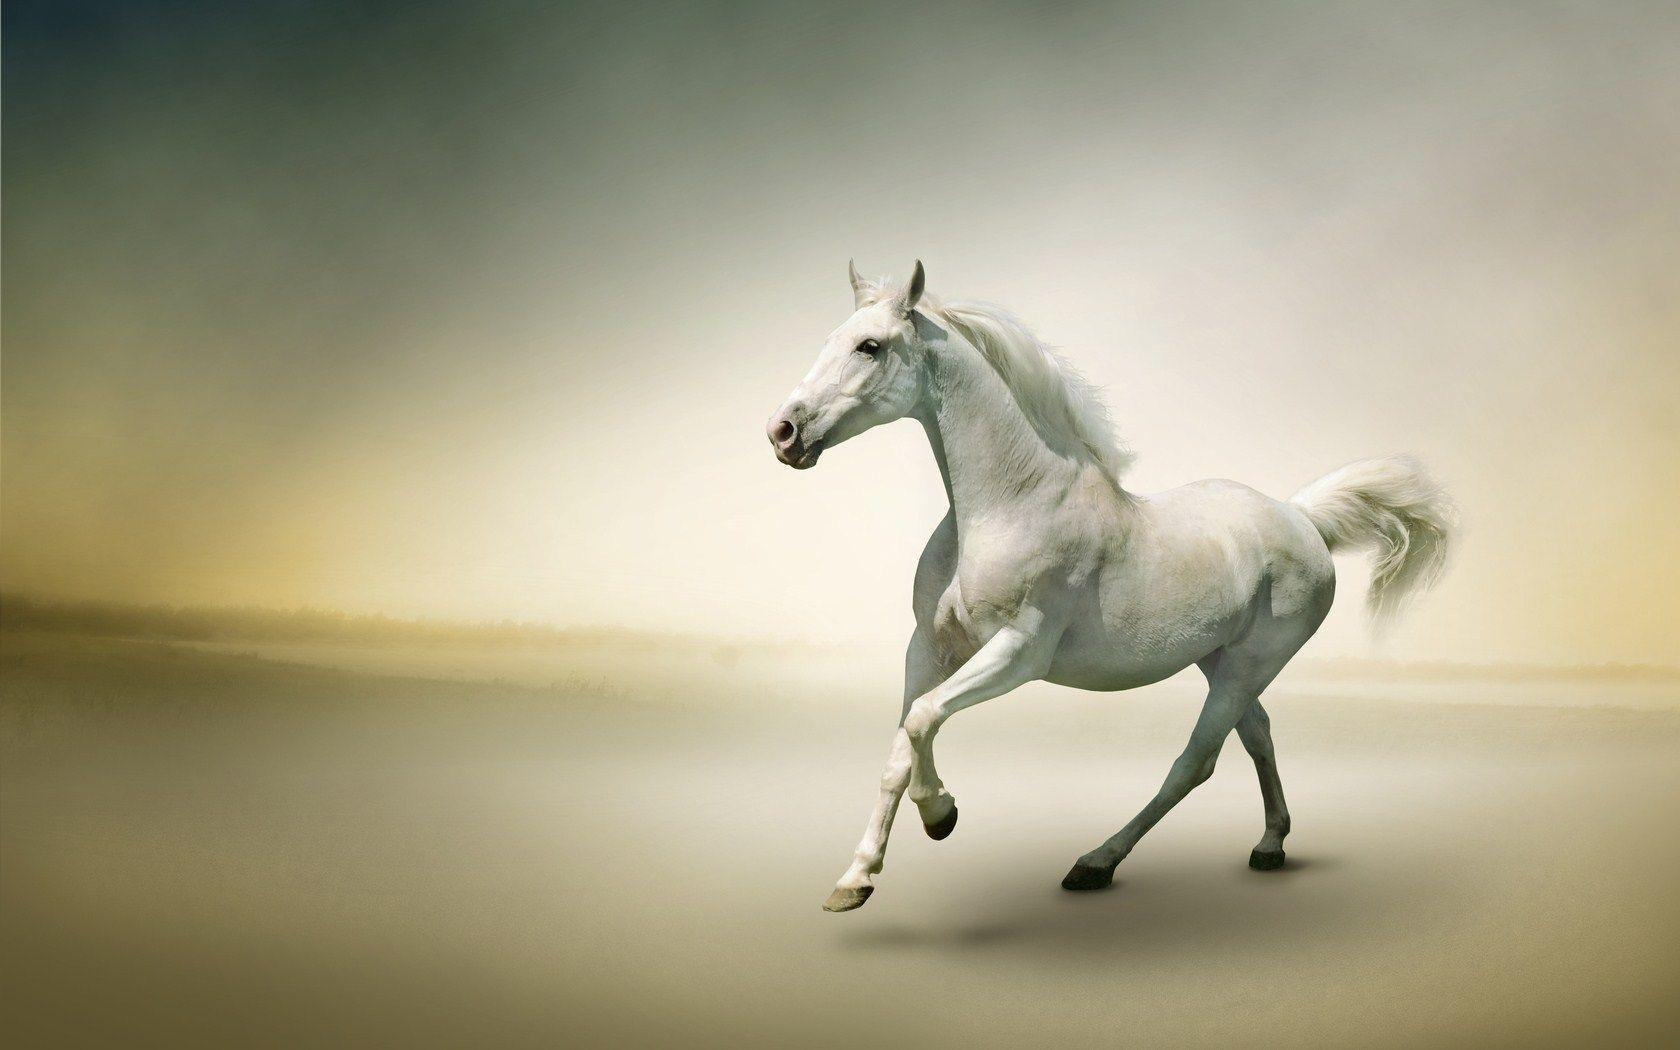 FunMozar – Photo Gallery: Beautiful White Horses